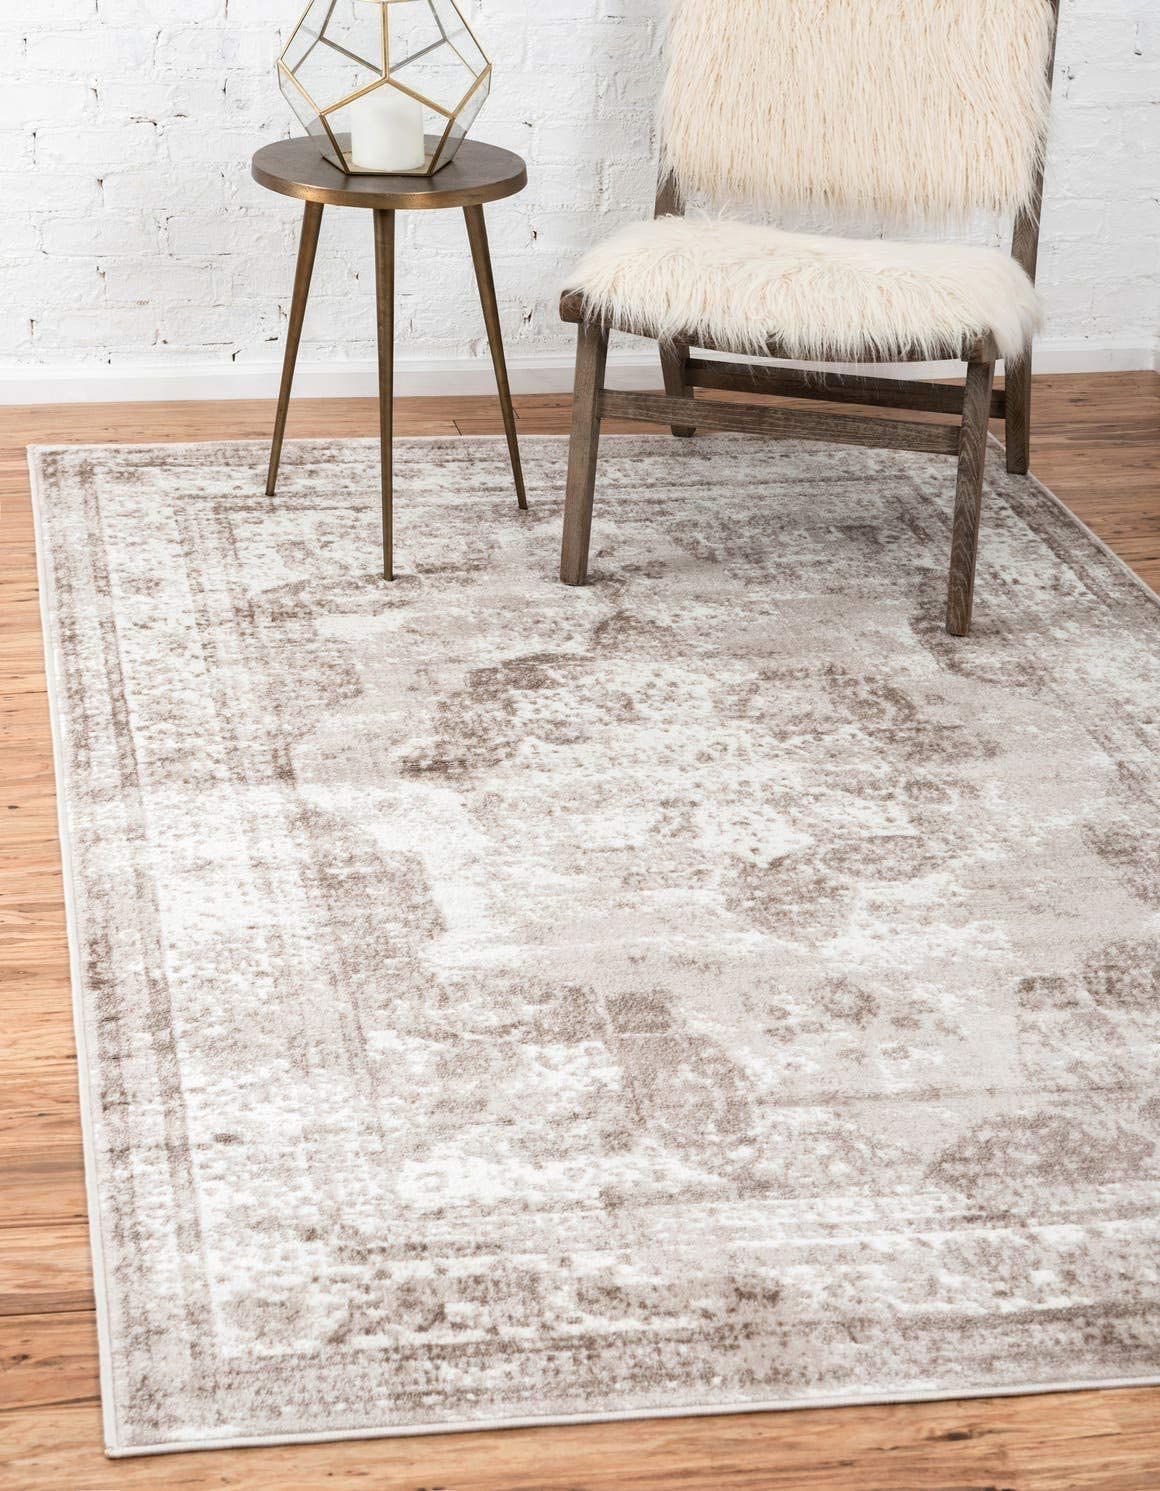 Unique Loom 3134074 Sofia Collection Traditional Vintage Beige Area Rug 5 0 x 8 0 , Rectangle